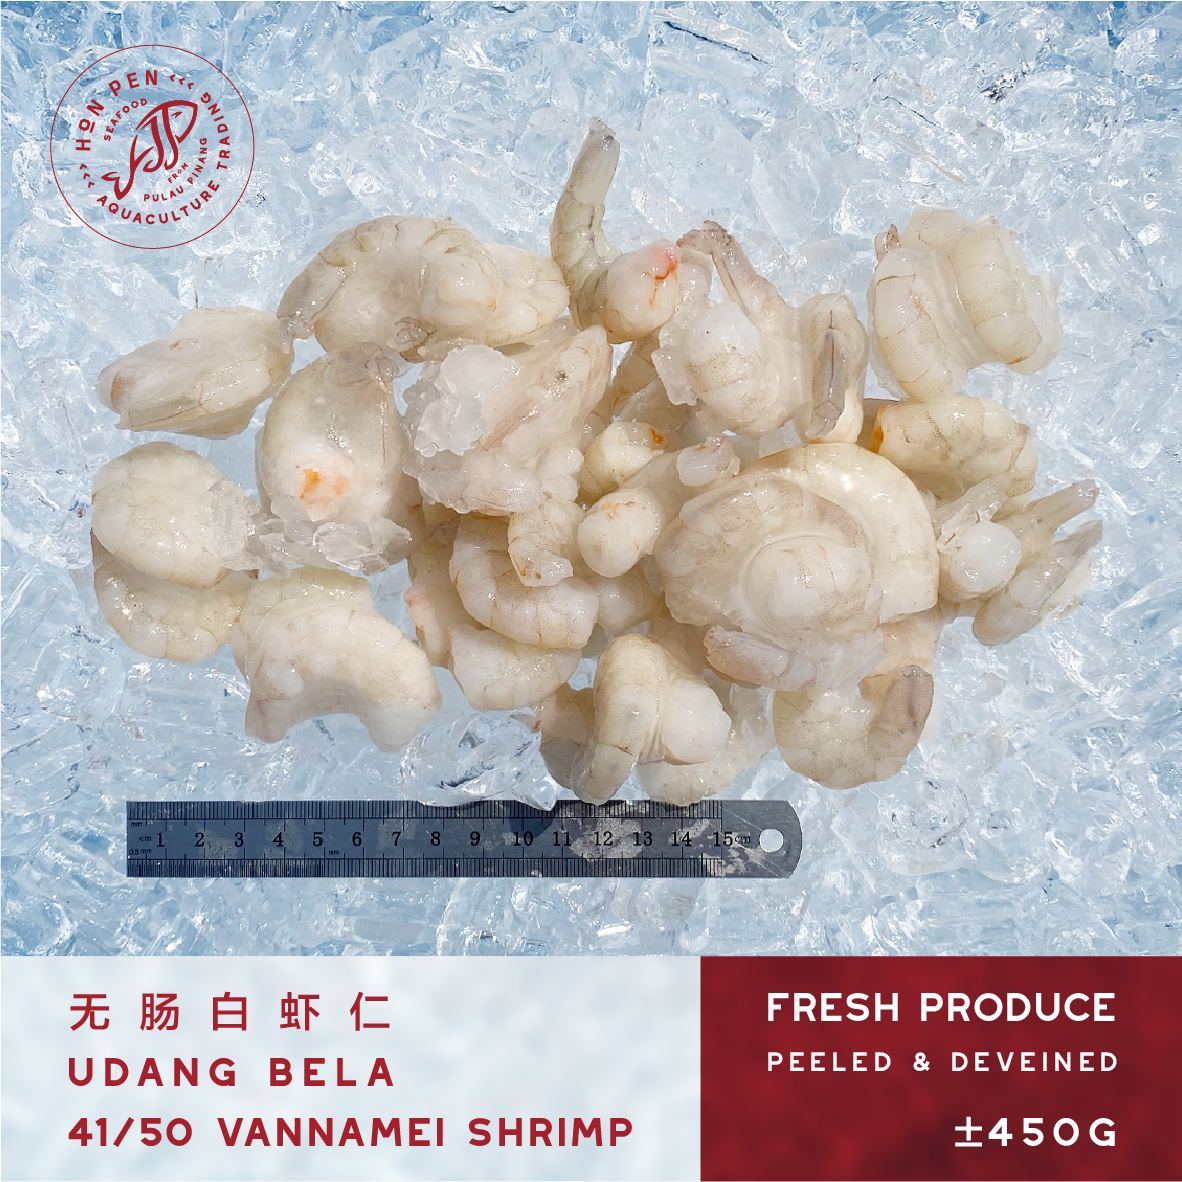 VANNAMEI SHRIMP 41/50 无肠白虾仁 UDANG BELA (Peeled & deveined) ±450g